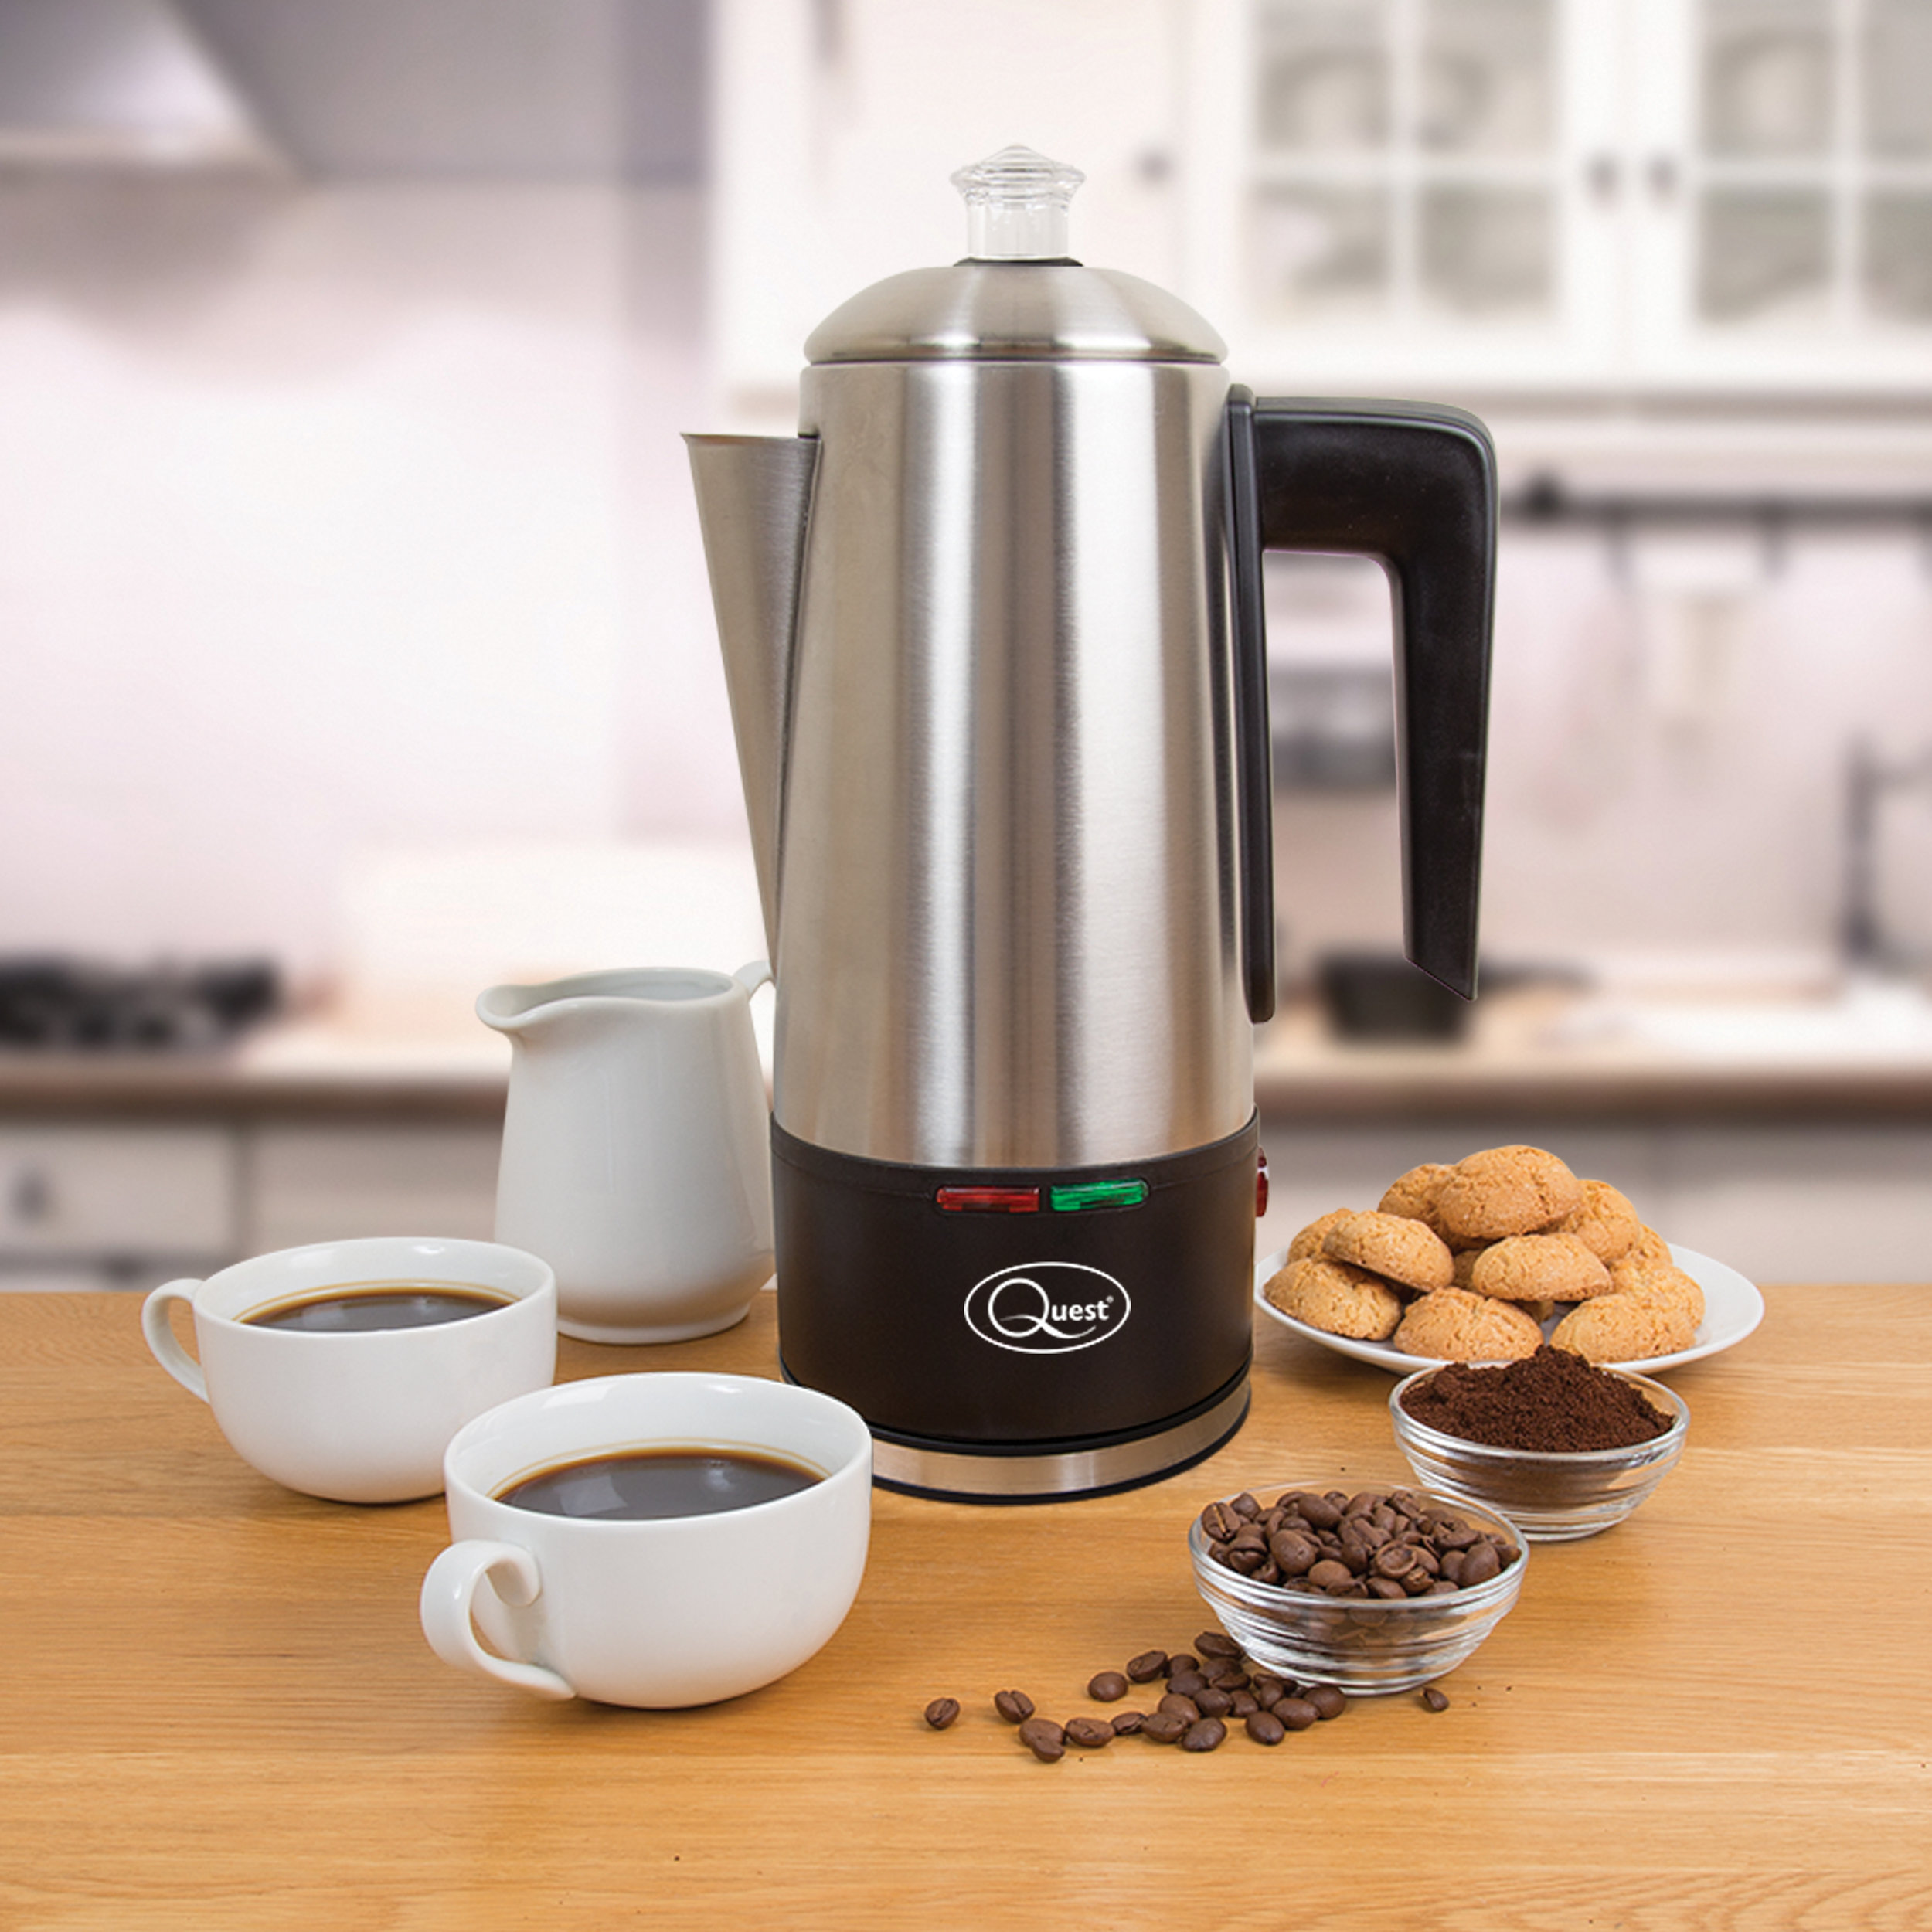 1.5L Electric Coffee Percolator in the kitchen with coffee cups